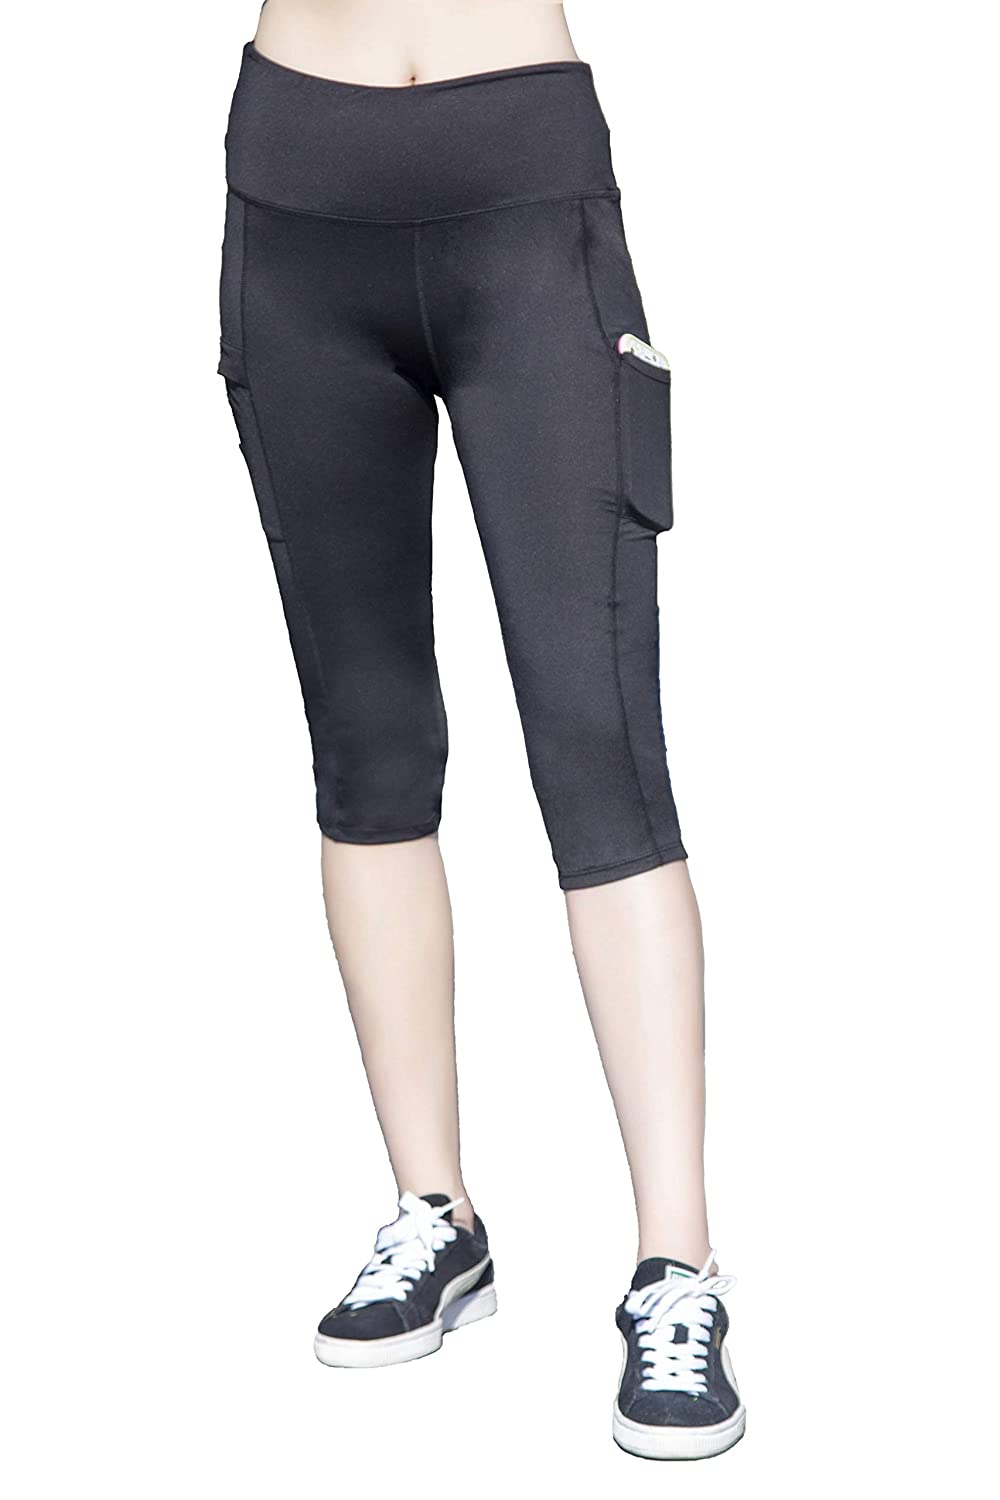 b5a9ba459e7b7f 90%Polyester/10%Spandex single jersey in Black and Mel. grey solid color.  High Waist yoga pants for women with pocket with cover